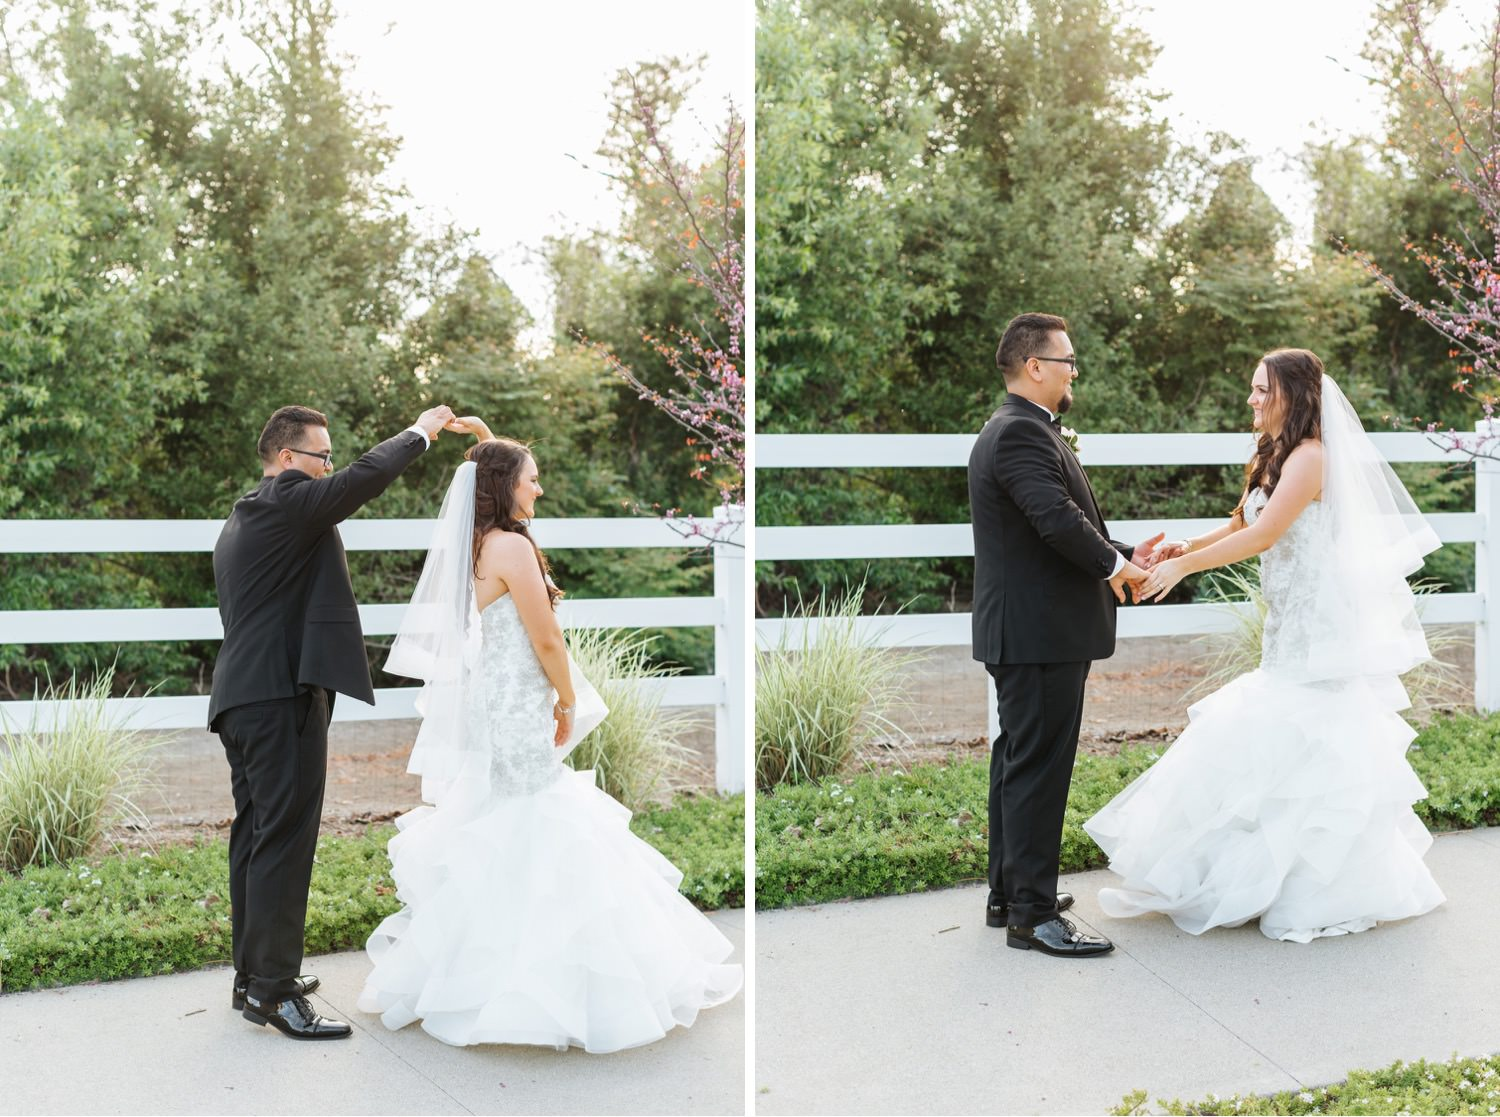 Romantic Bride and Groom Photos - https://brittneyhannonphotography.com